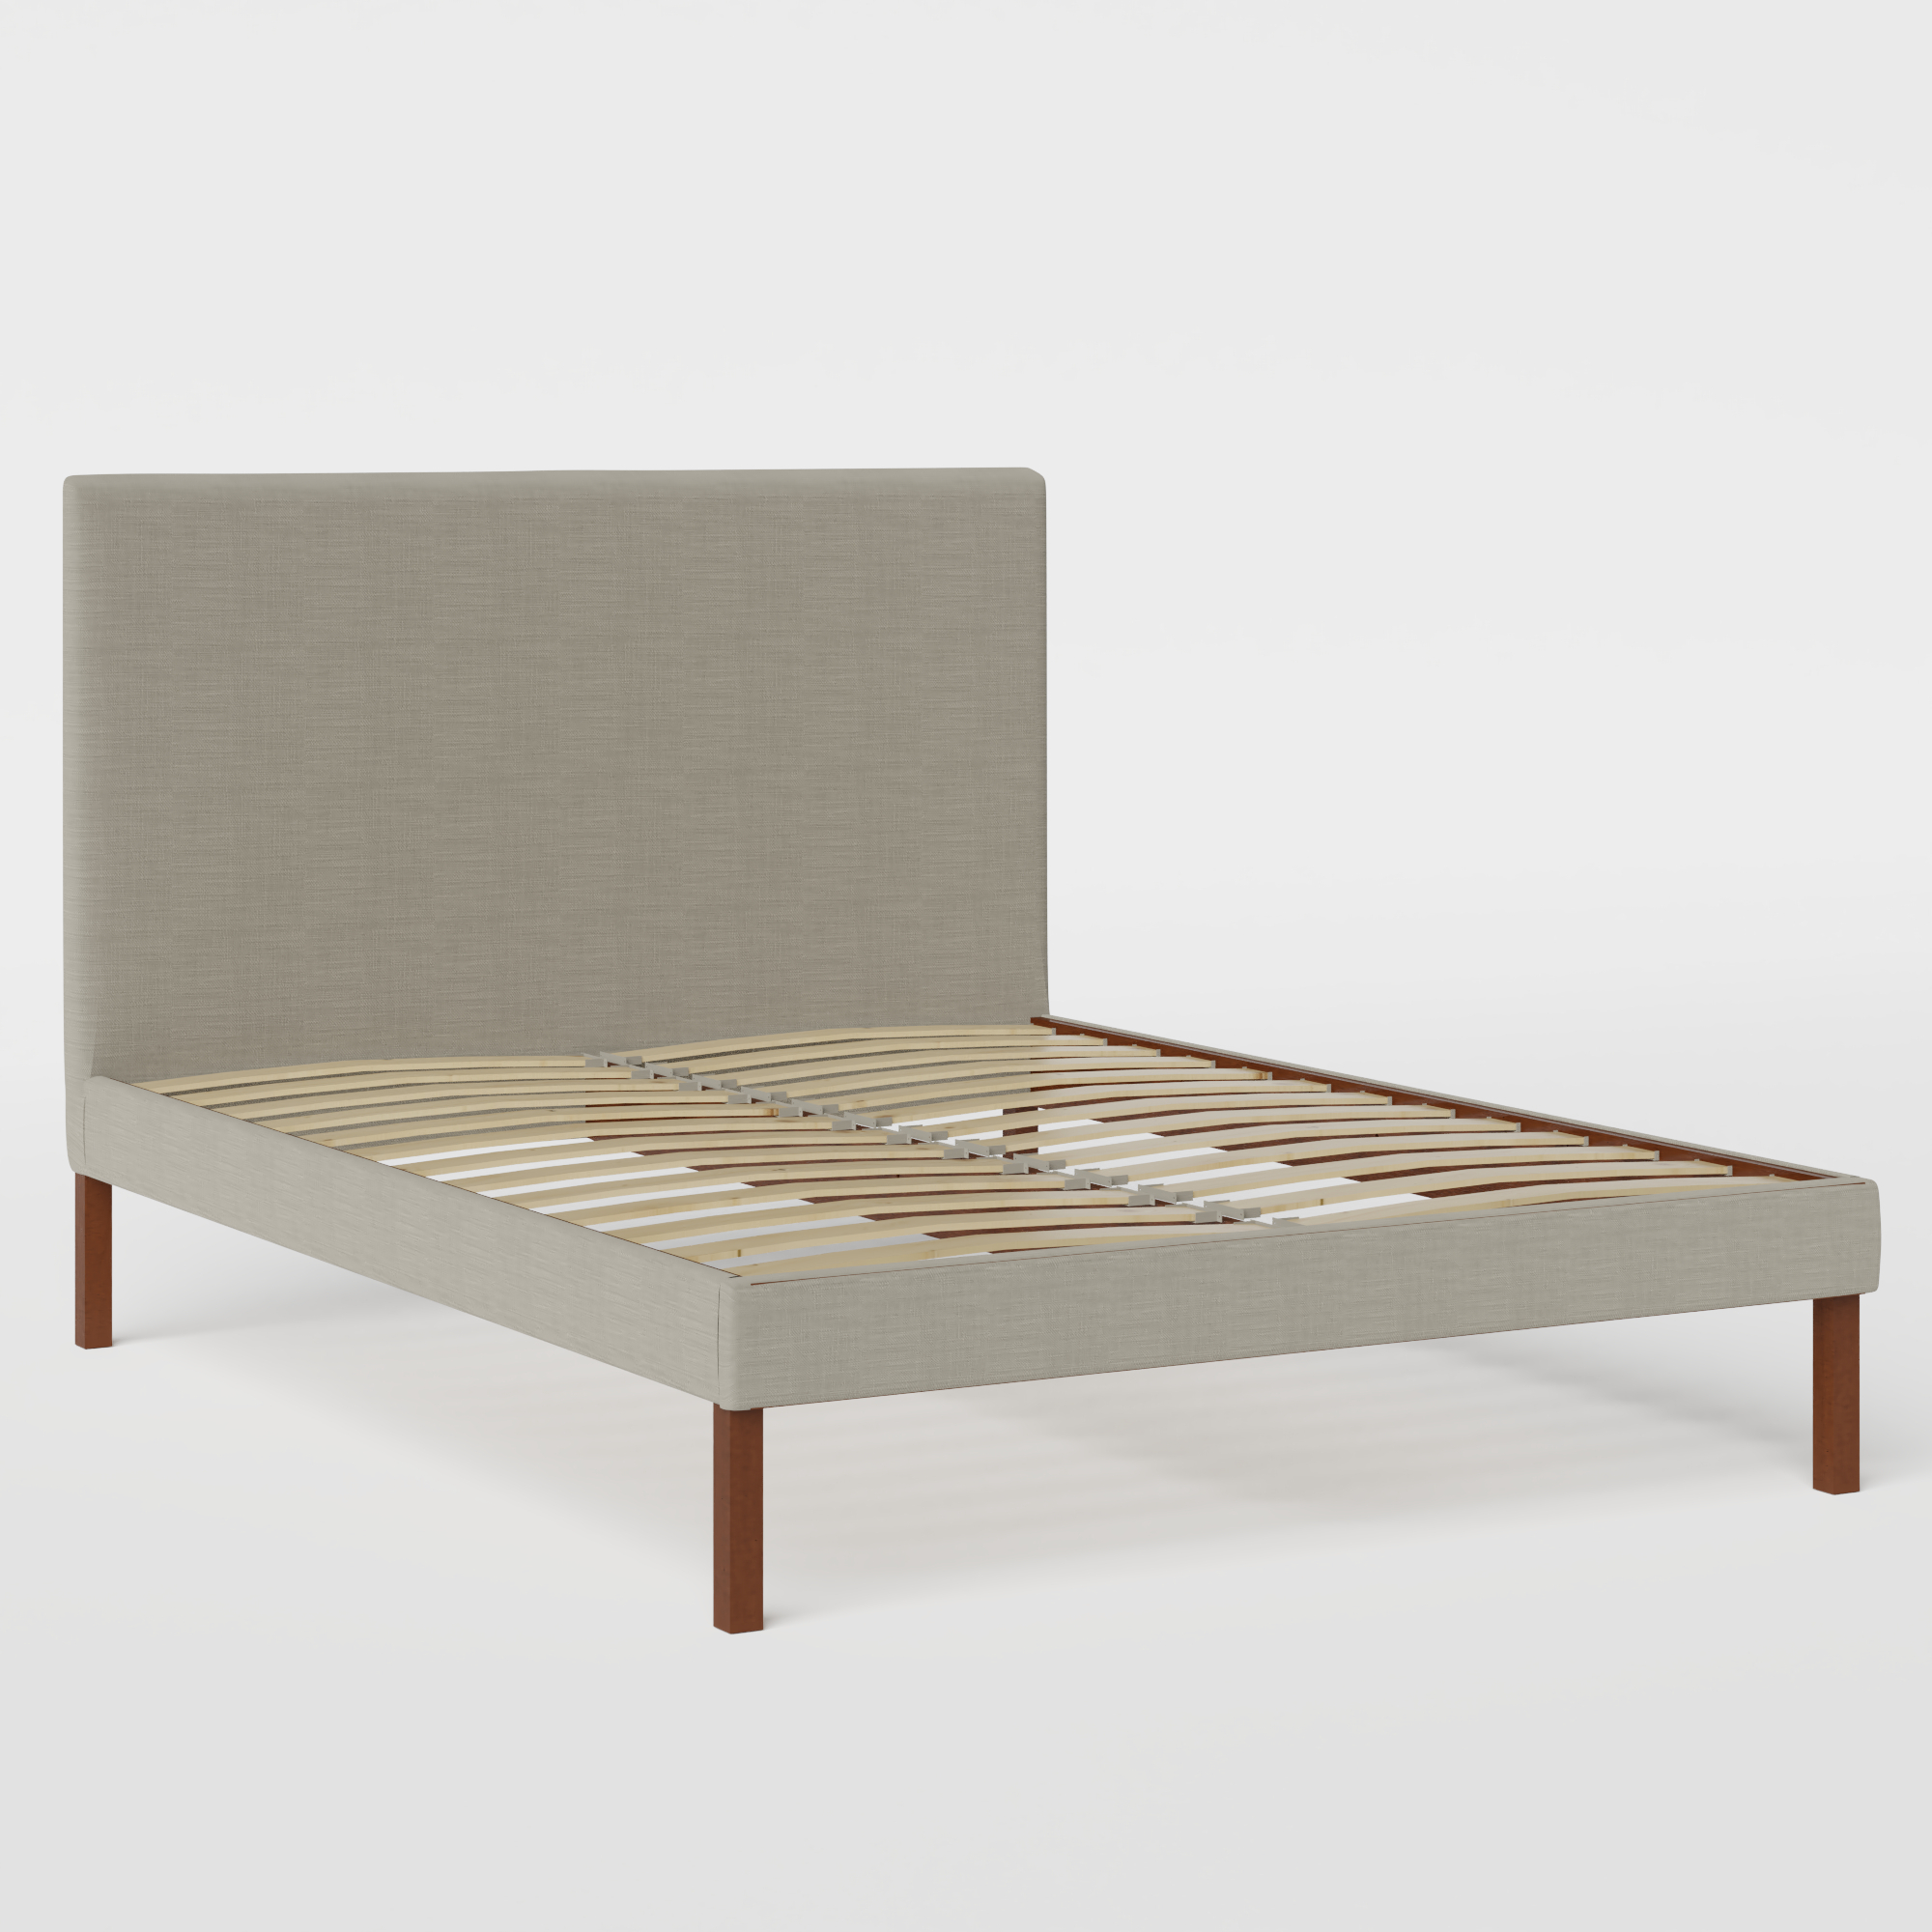 Misaki Upholstered upholstered bed in grey fabric